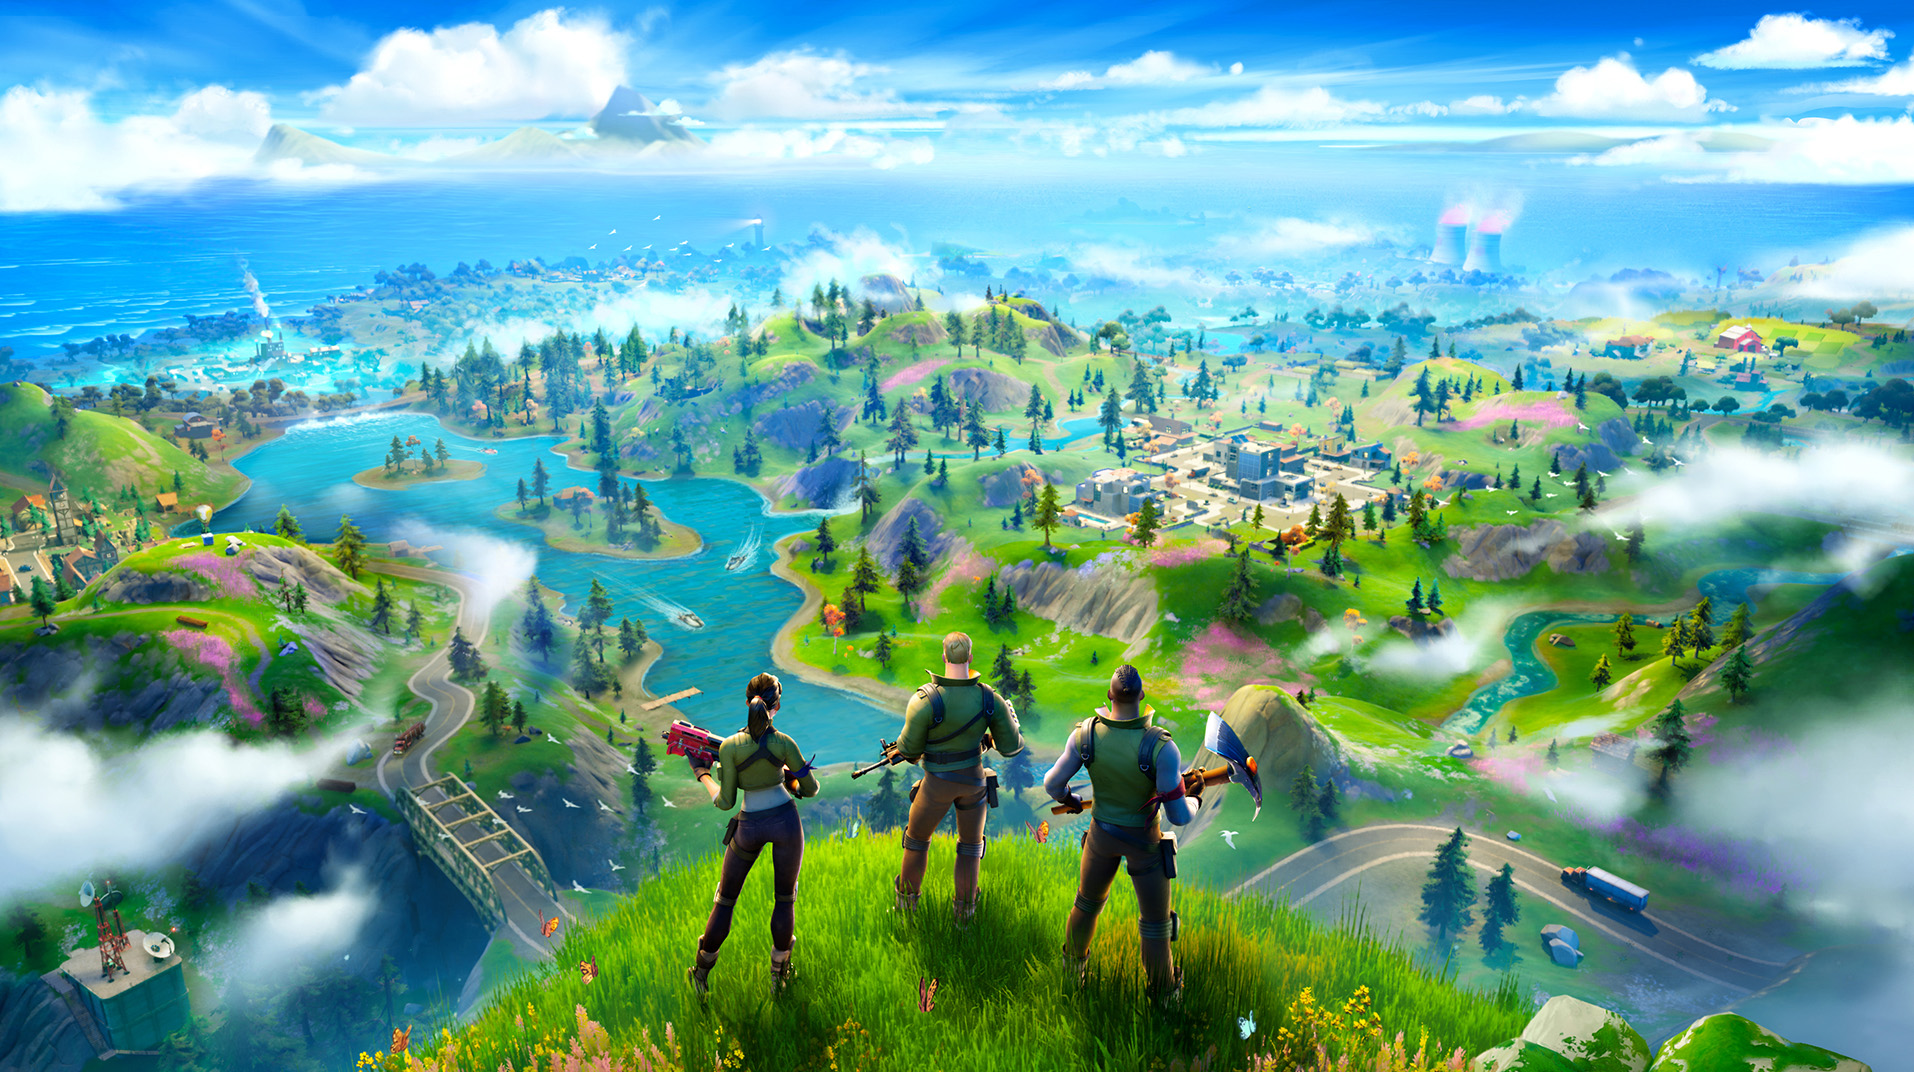 Fortnite' emerges from black hole with all-new island - Chicago Tribune